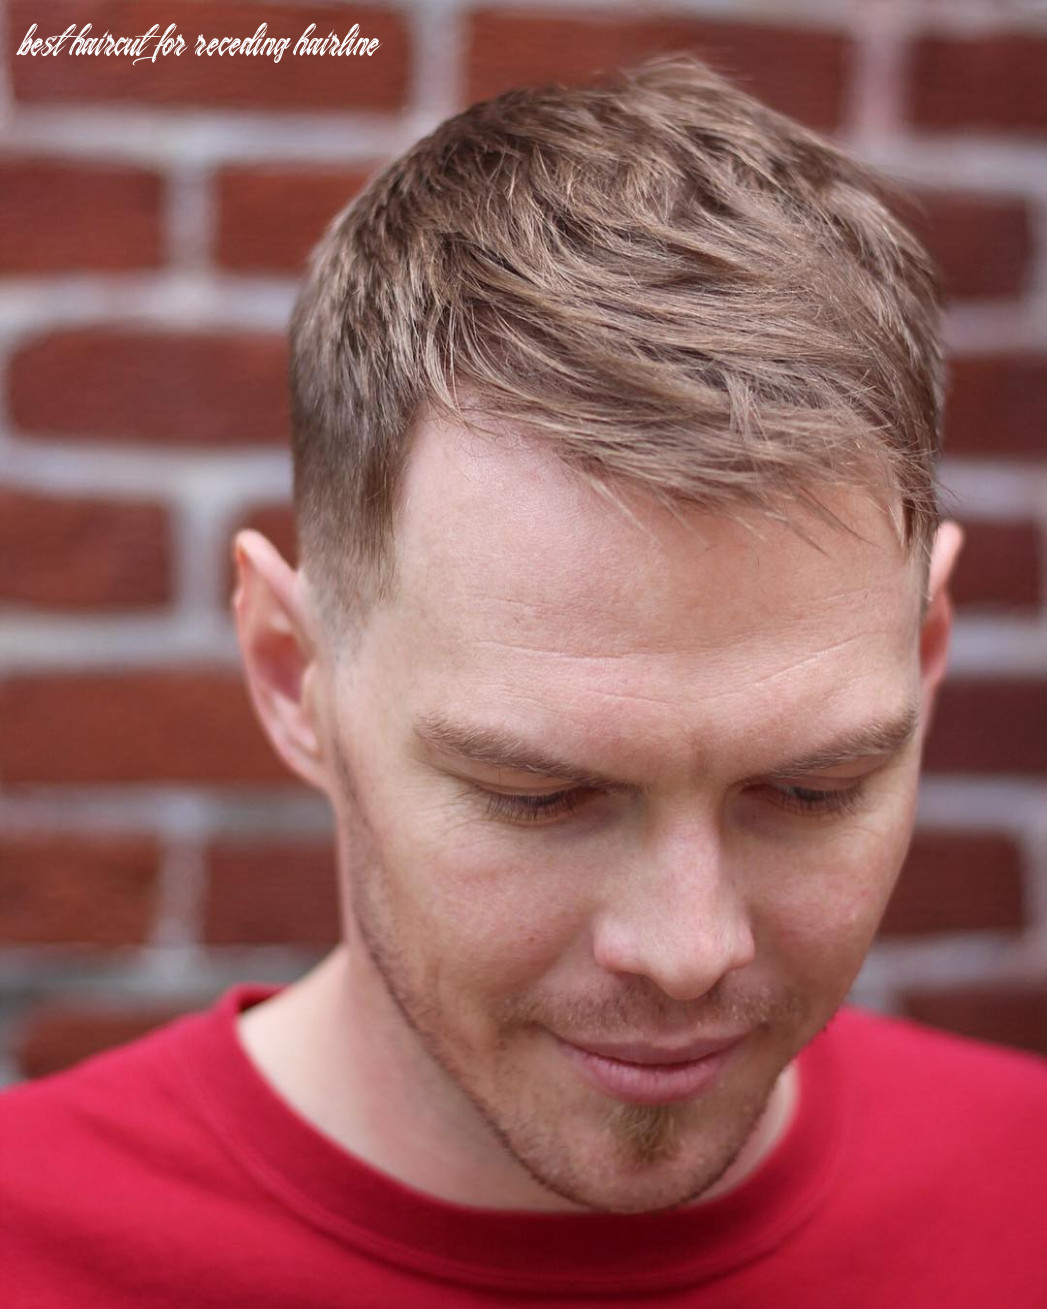 8+ Receding Hairline Haircuts That Look Great + Conceal Hair Loss